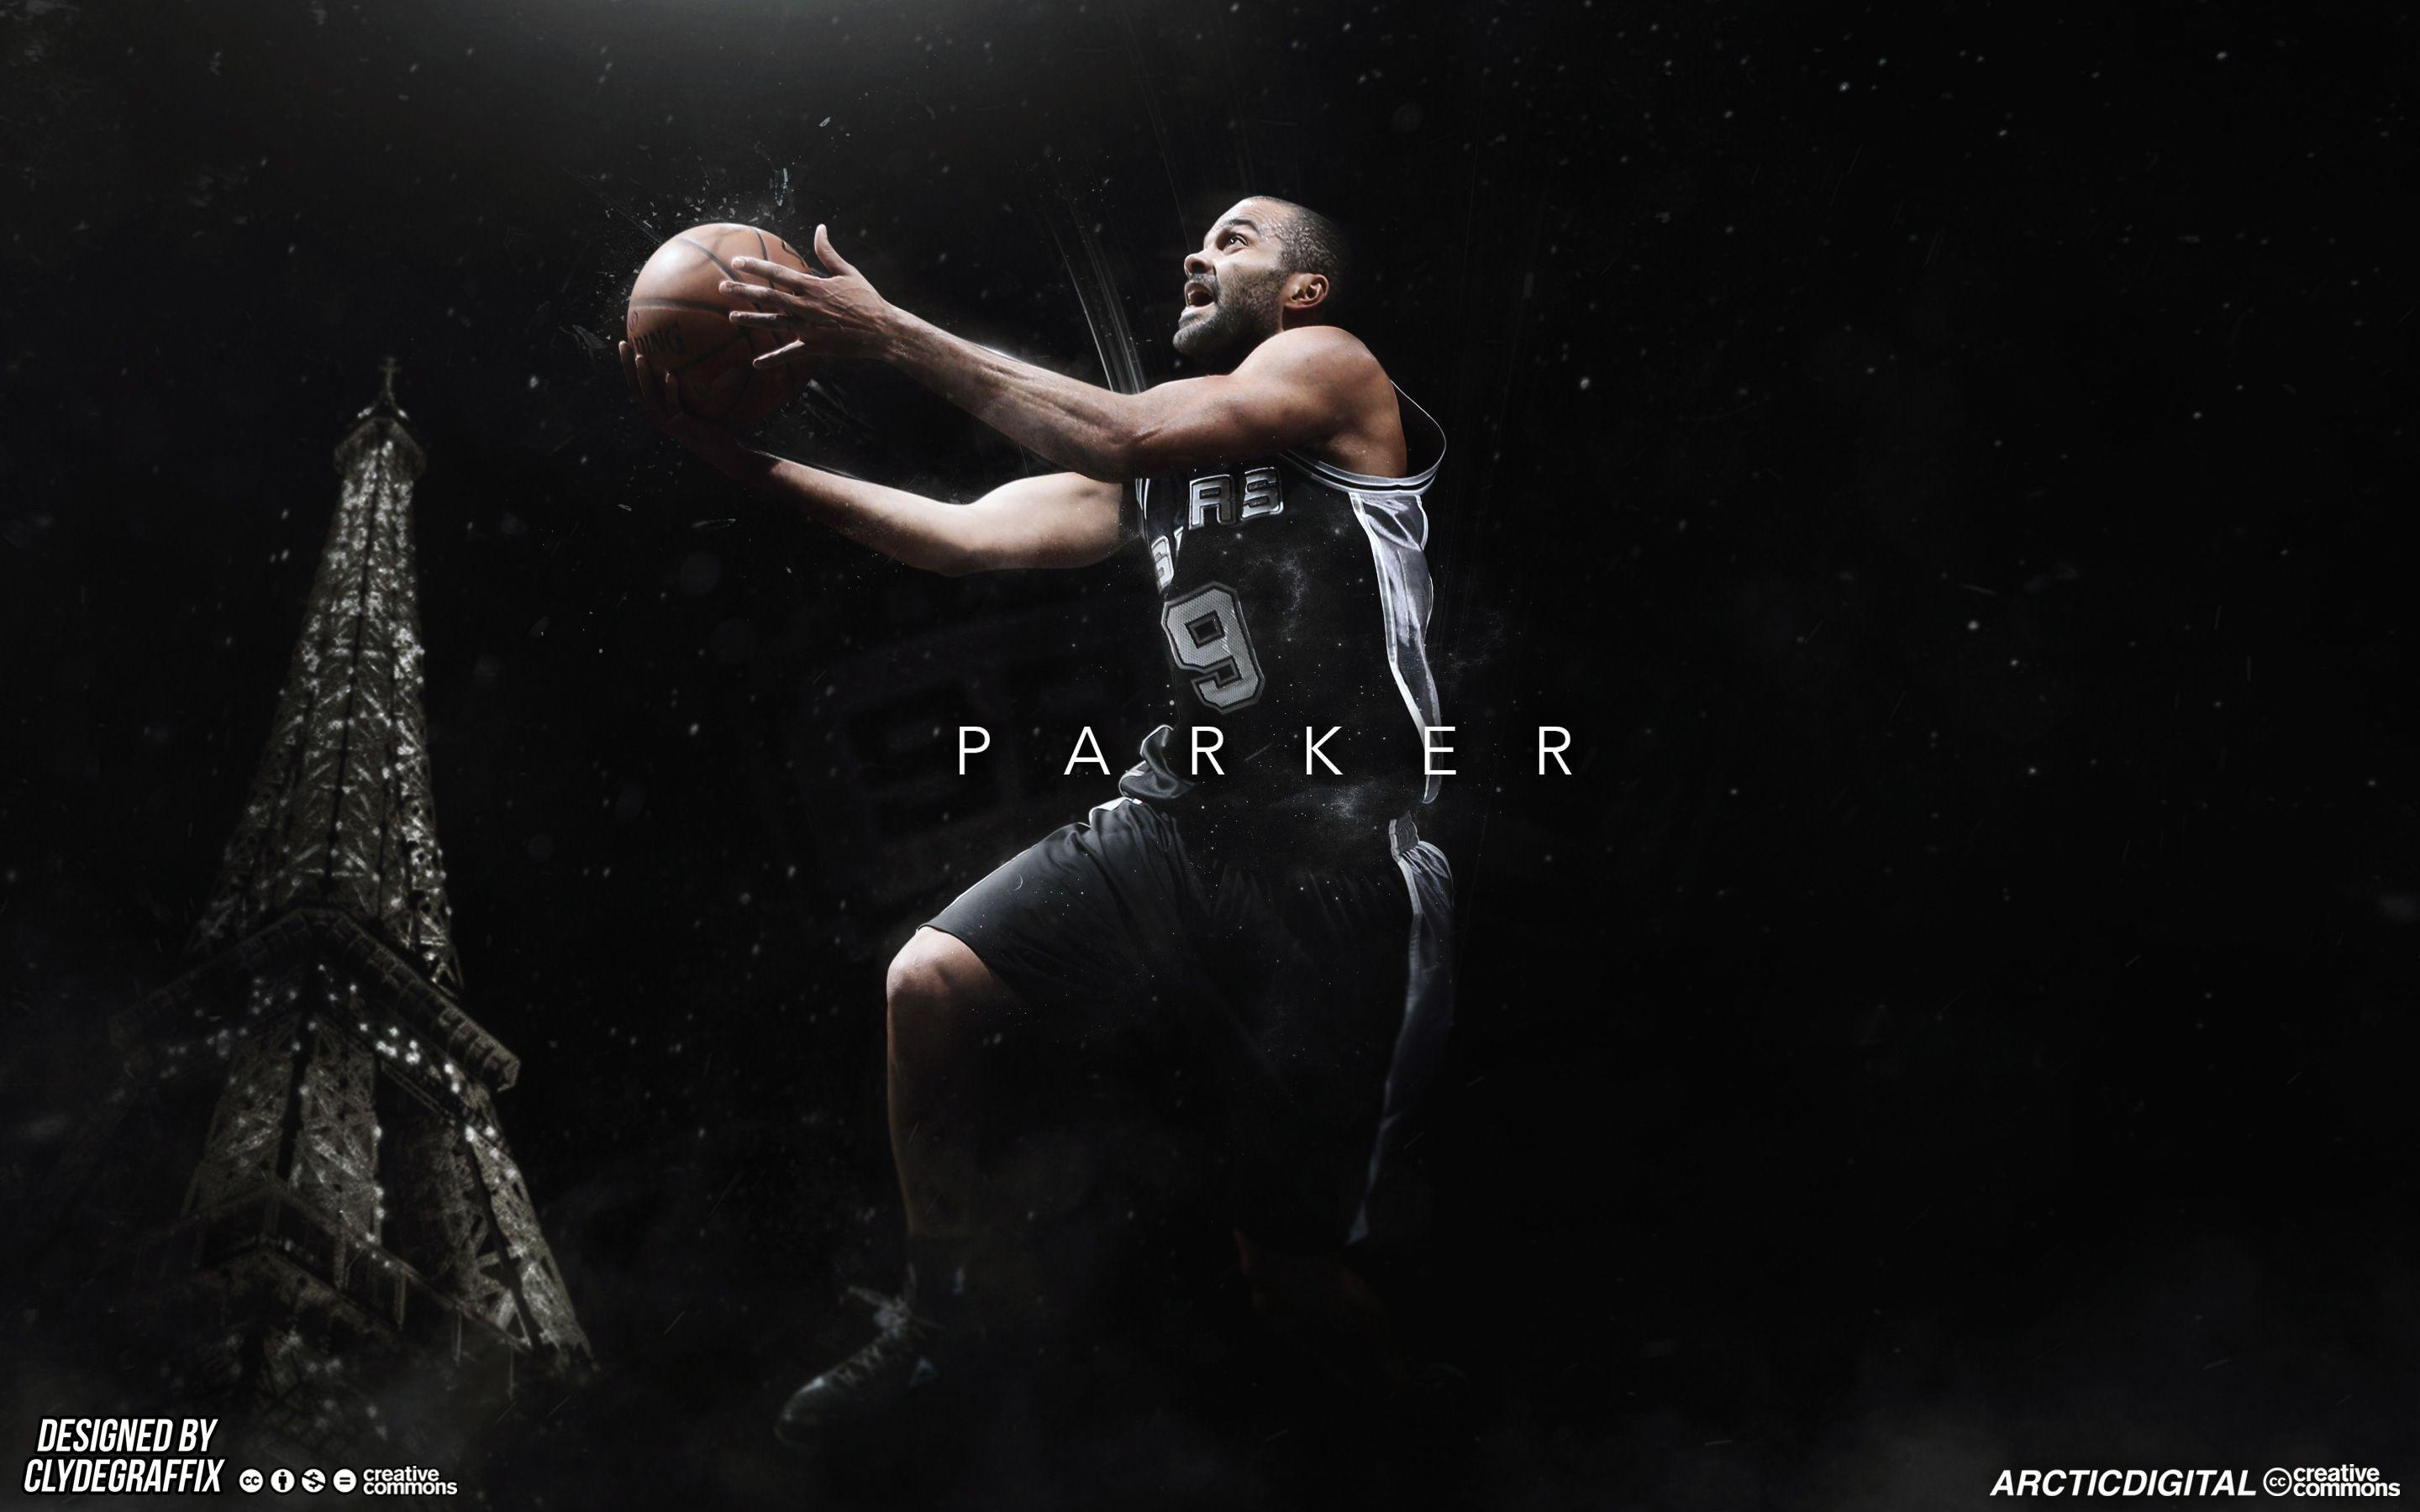 Tony Parker San Antonio Spurs 2015 Wallpaper | Basketball ...